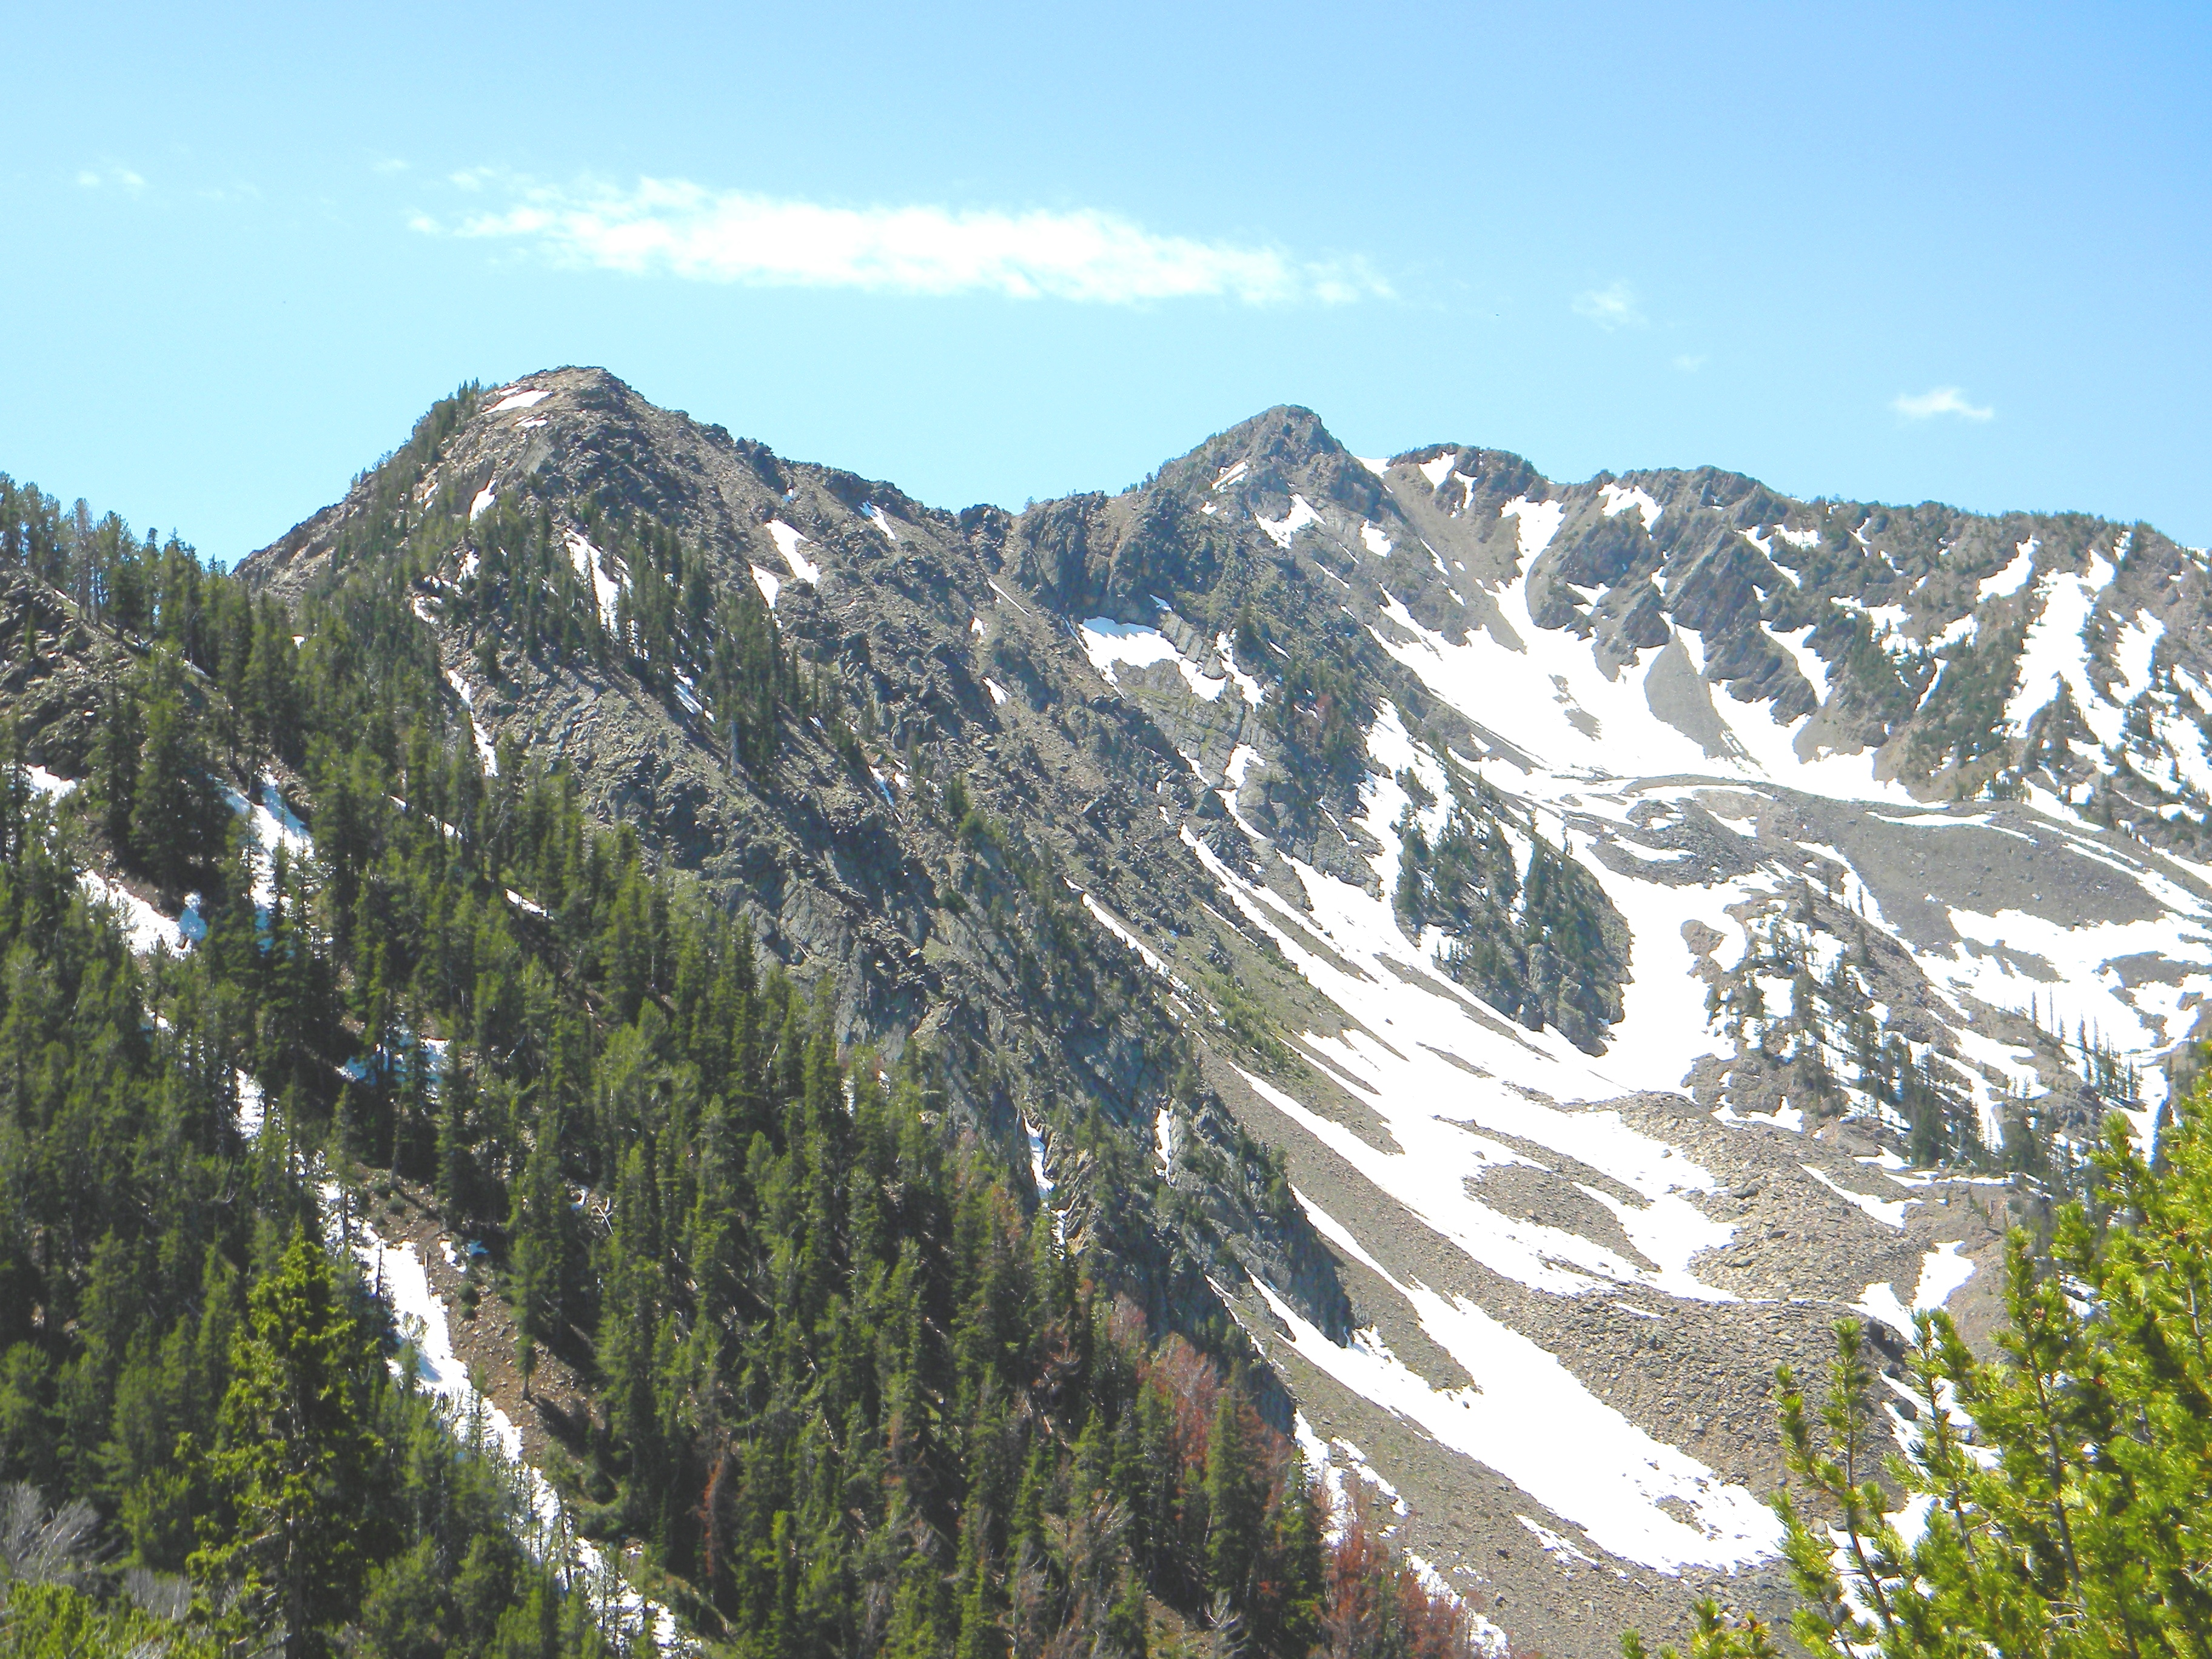 This is Black Mountain and its north ridge, which are part of the Contintal Divide on the Idaho/Montana border. This view is about five miles up the Mile Creek trail. June 2009. Mike Hays Photo